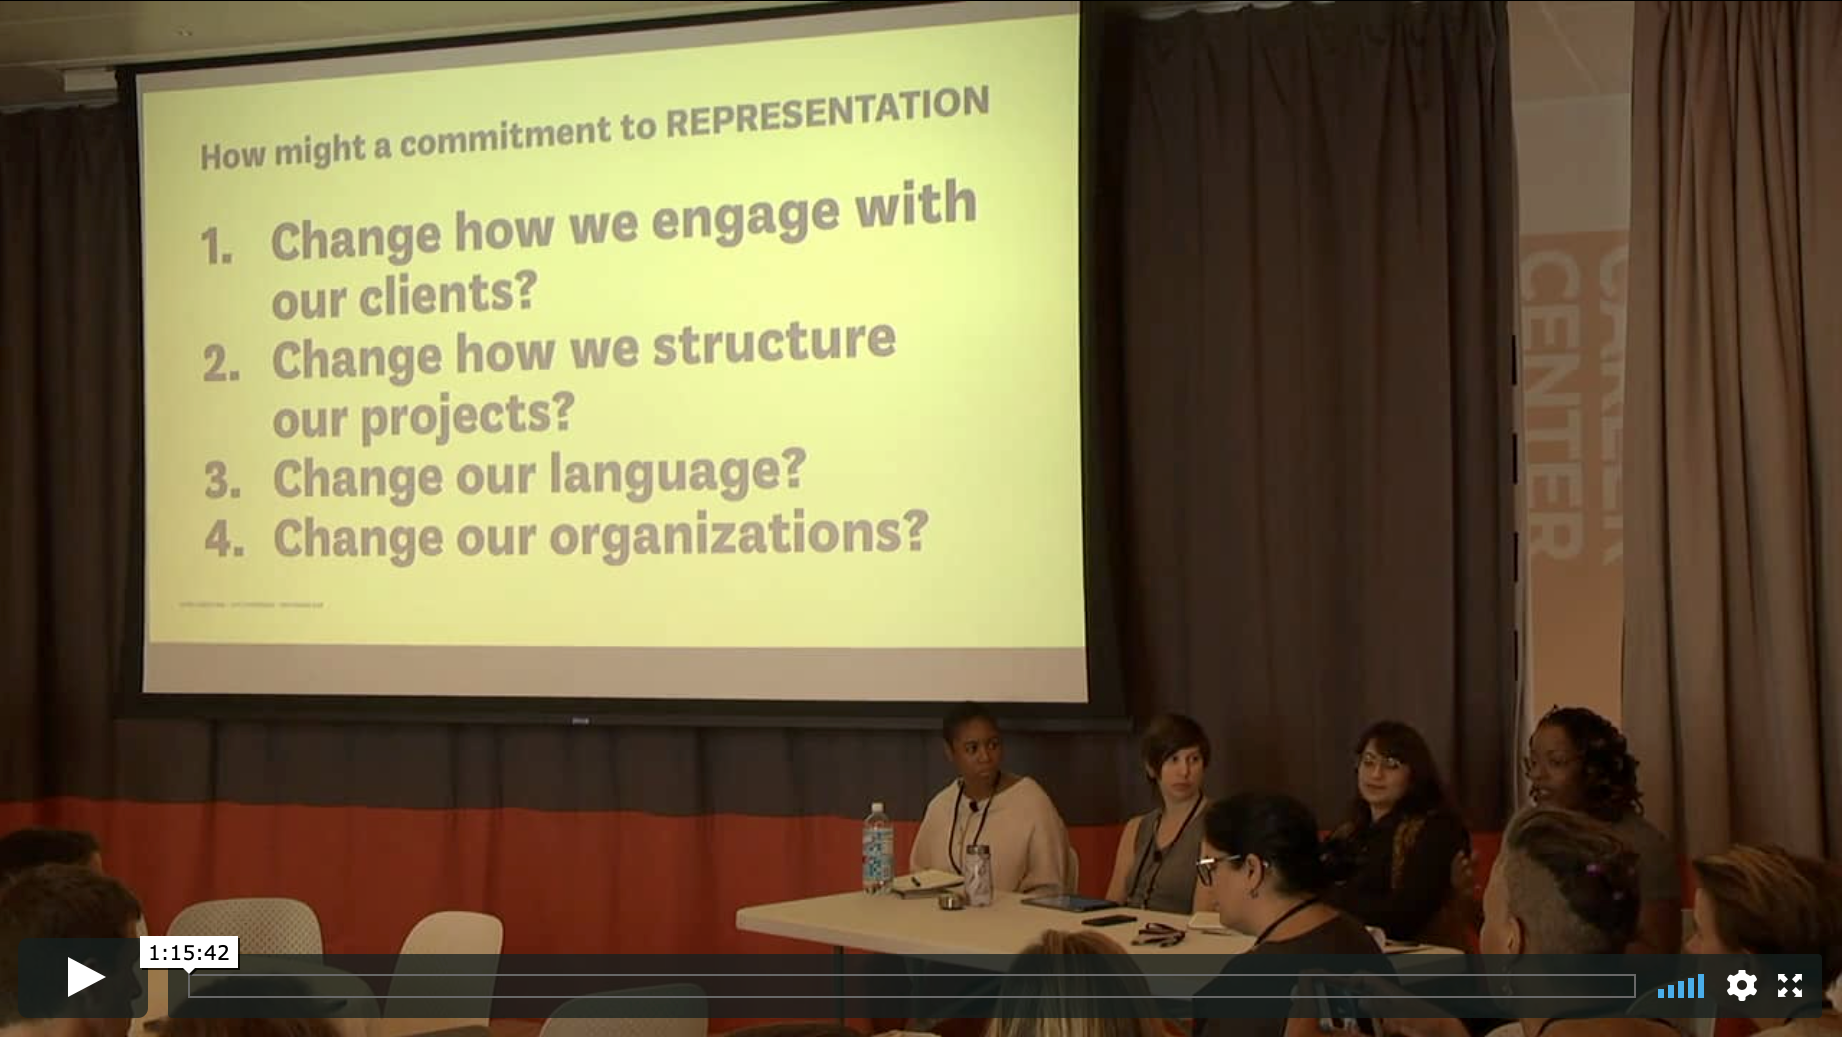 Four panelists sit at a table to the right of a screen showing a presentation on Representation